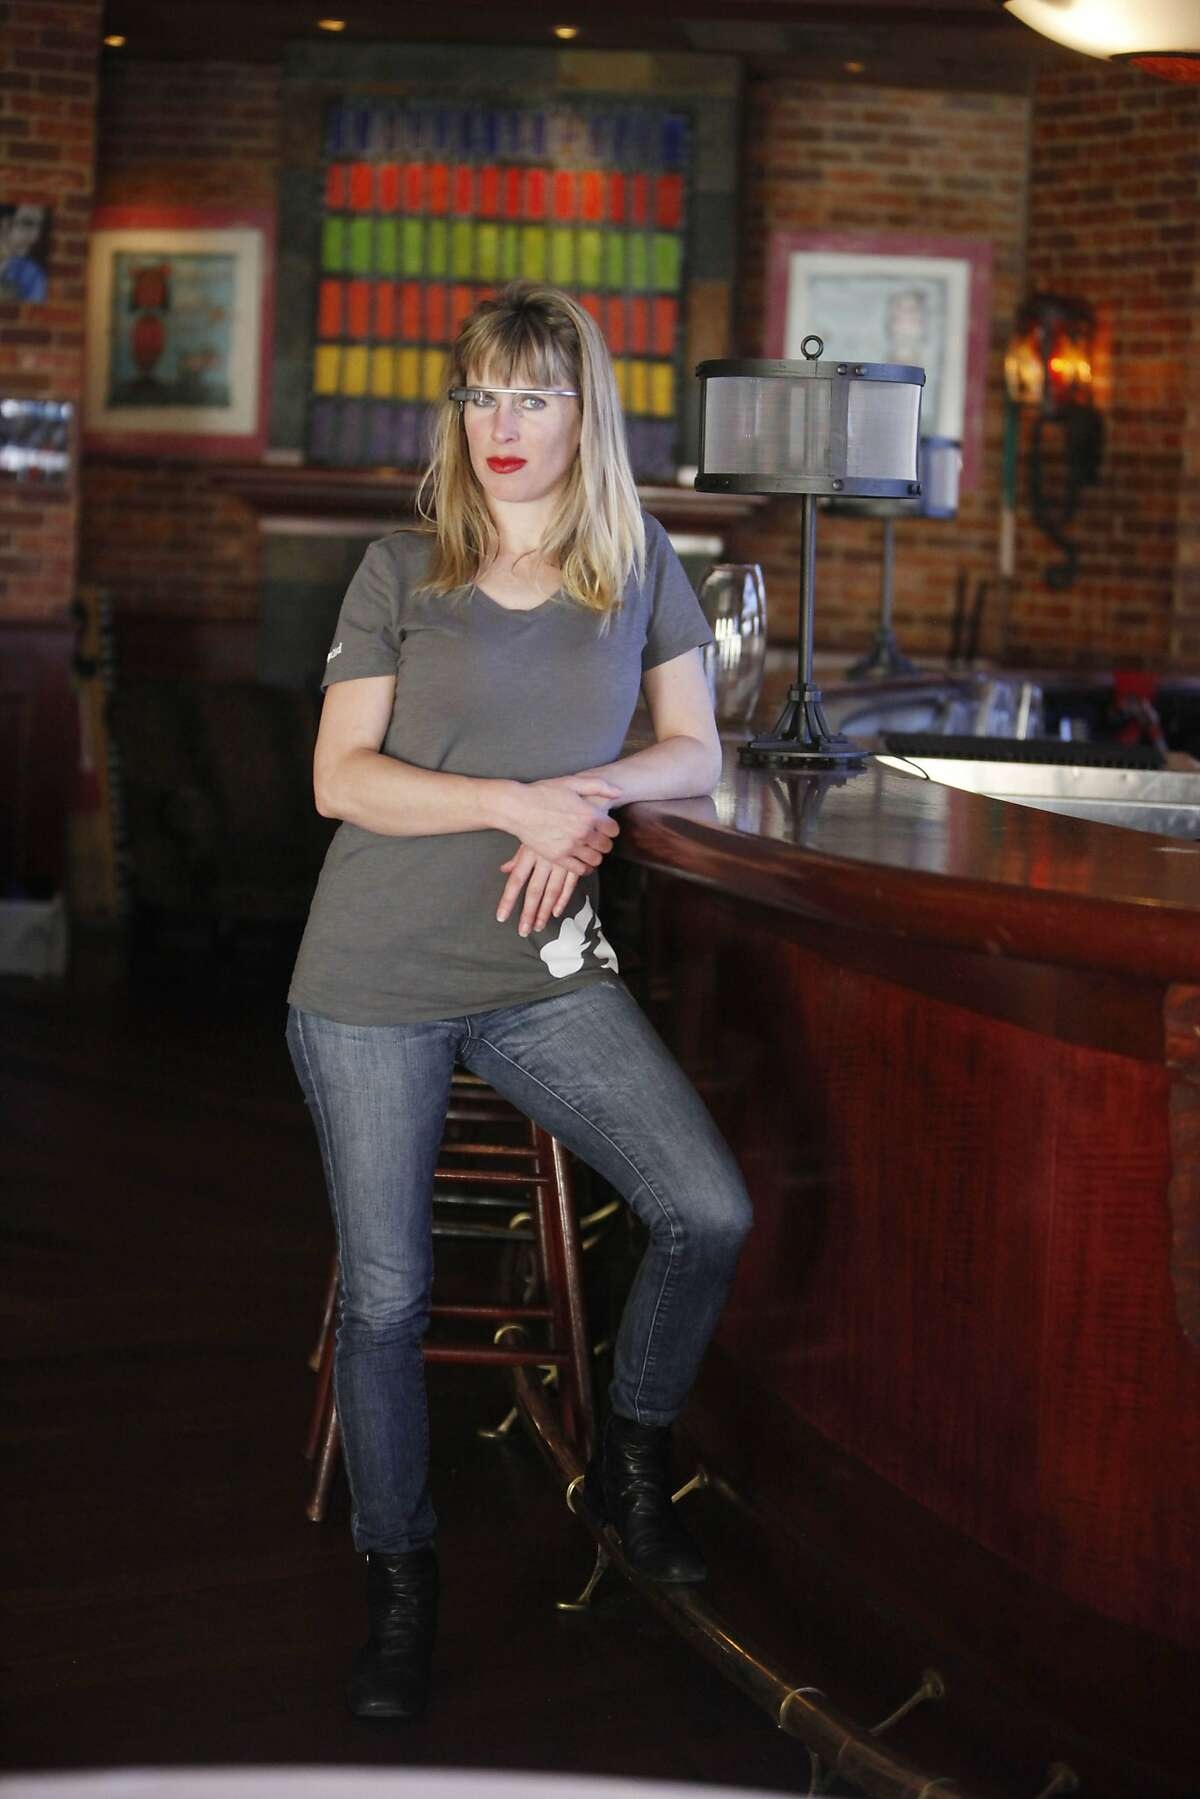 Sarah Slocum, Bay Area resident, wears her Google Glass on Monday, March 24, 2014, in the Bay Area, Calif. Slocum was reportedly attacked while wearing her Google Glass at the Haight Street bar Molotov's in February.